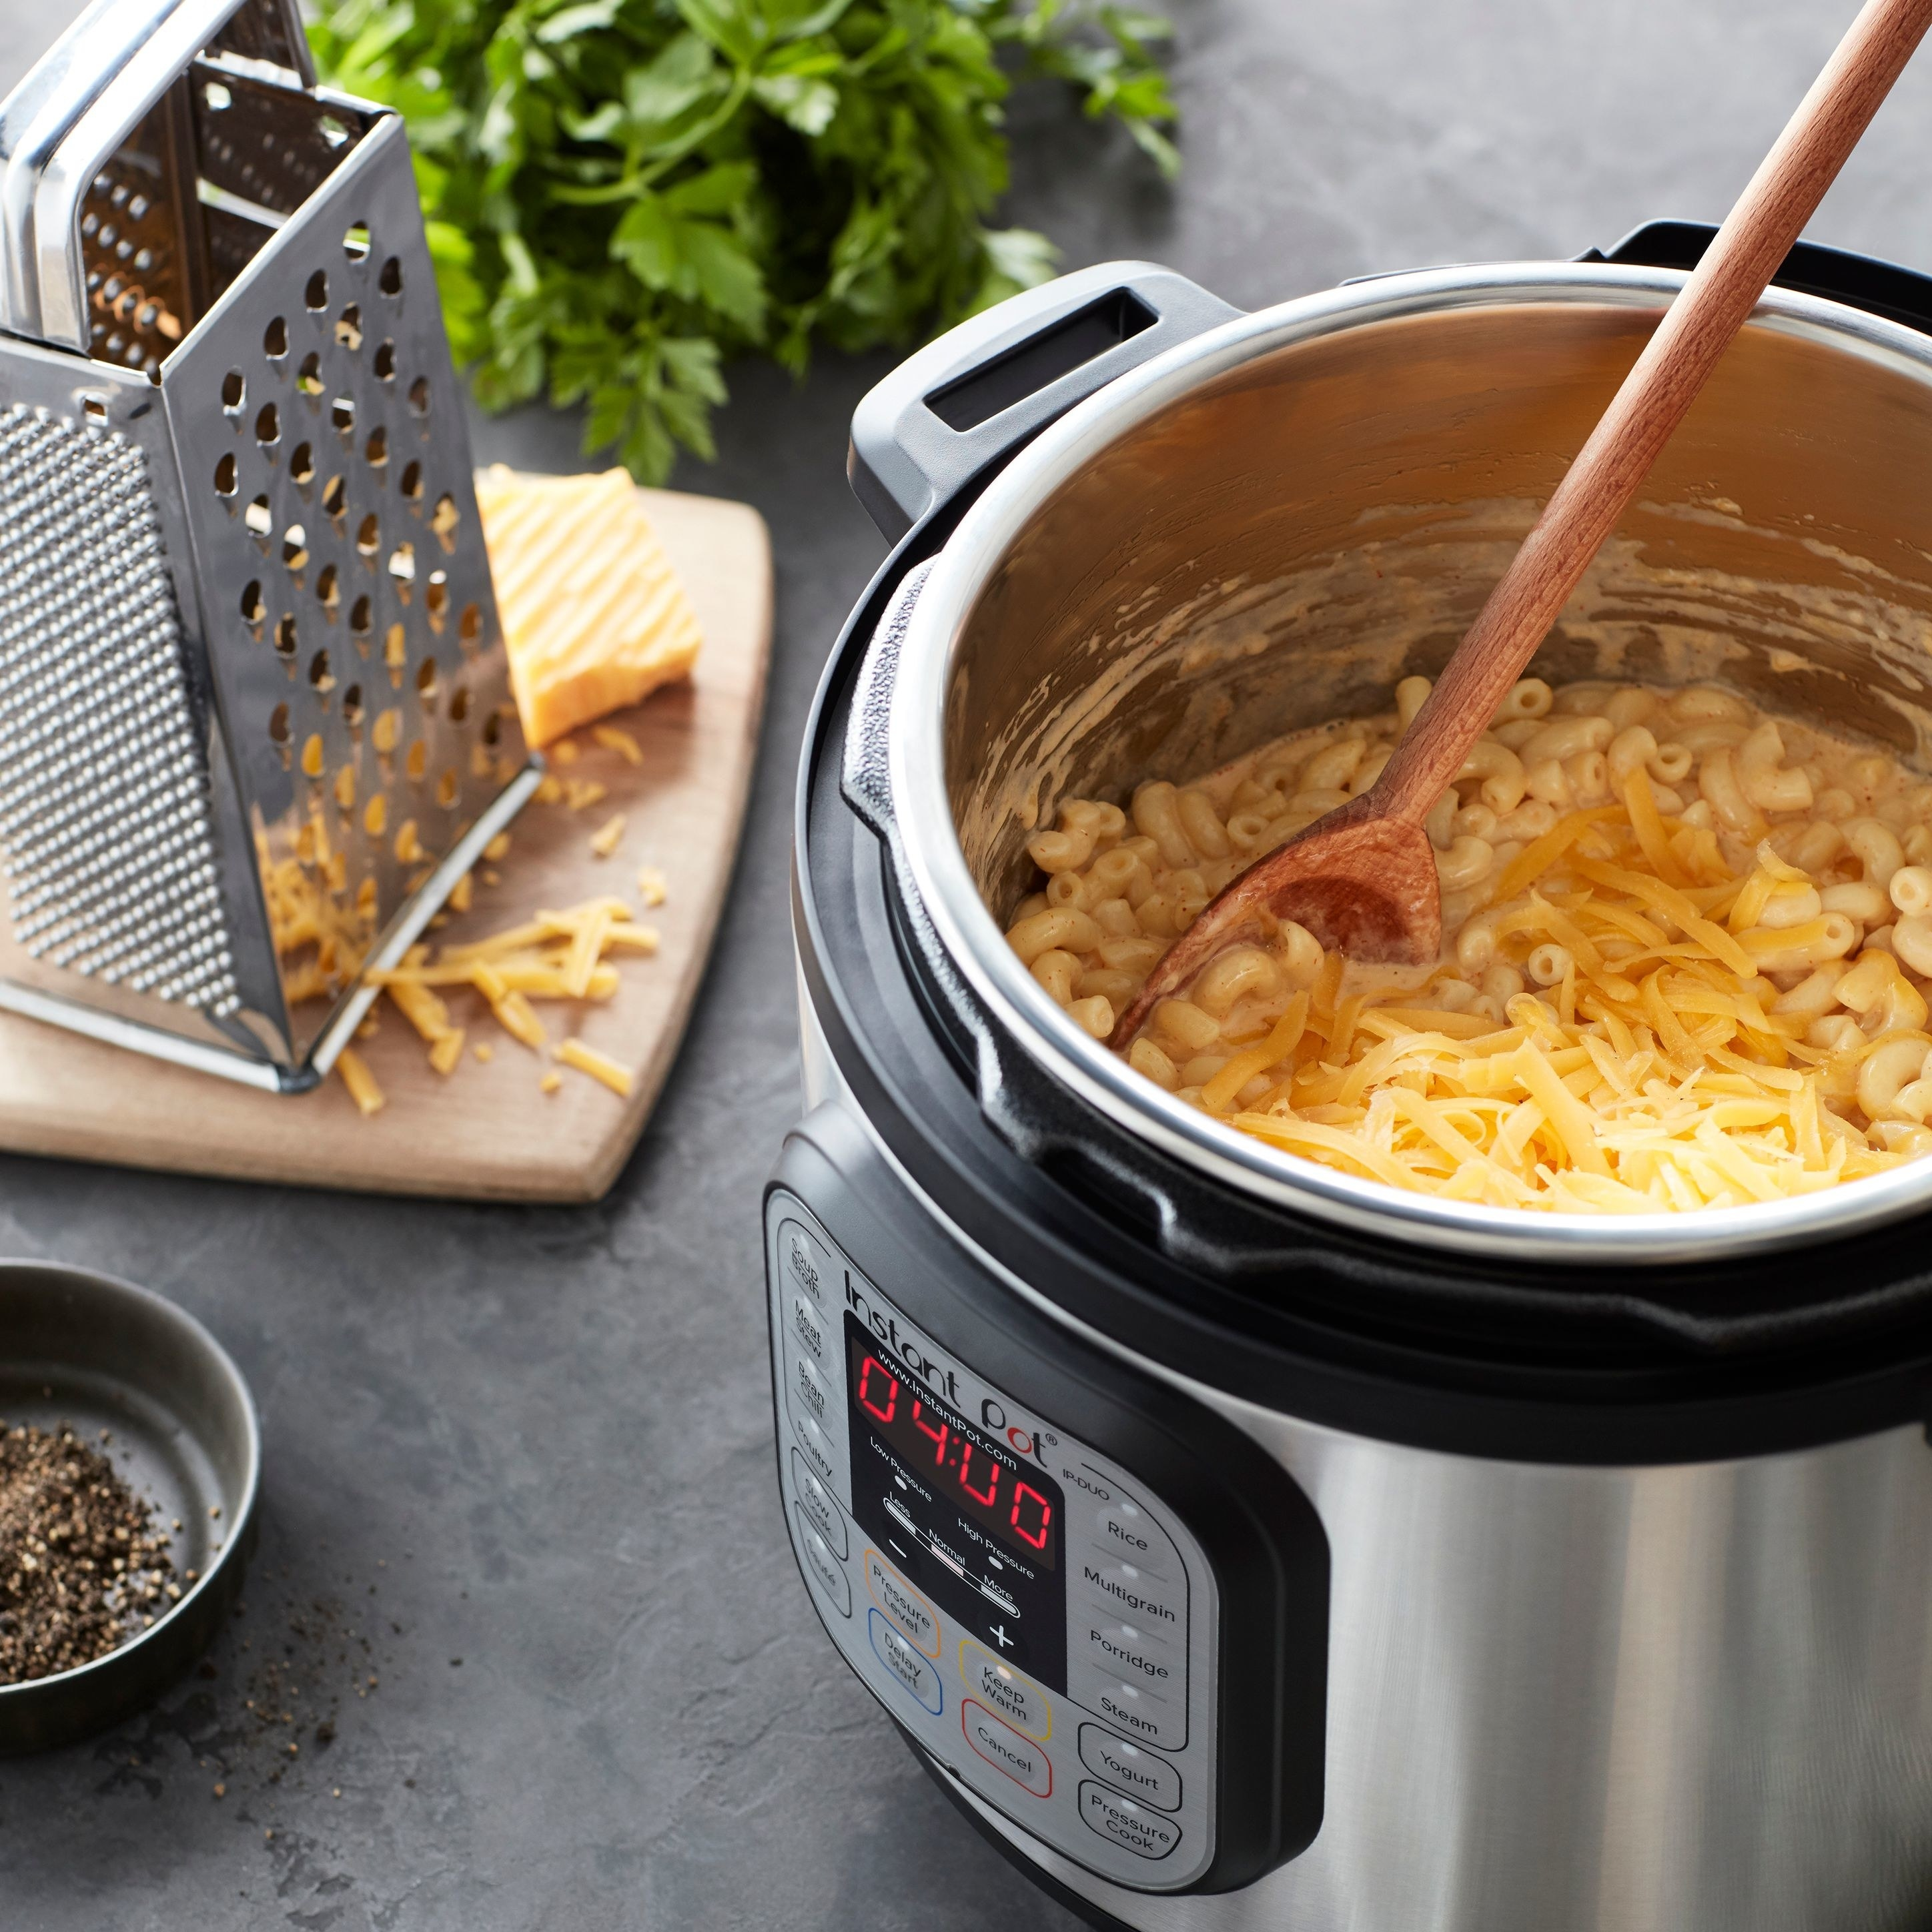 The Instant Pot Duo preparing mac and cheese